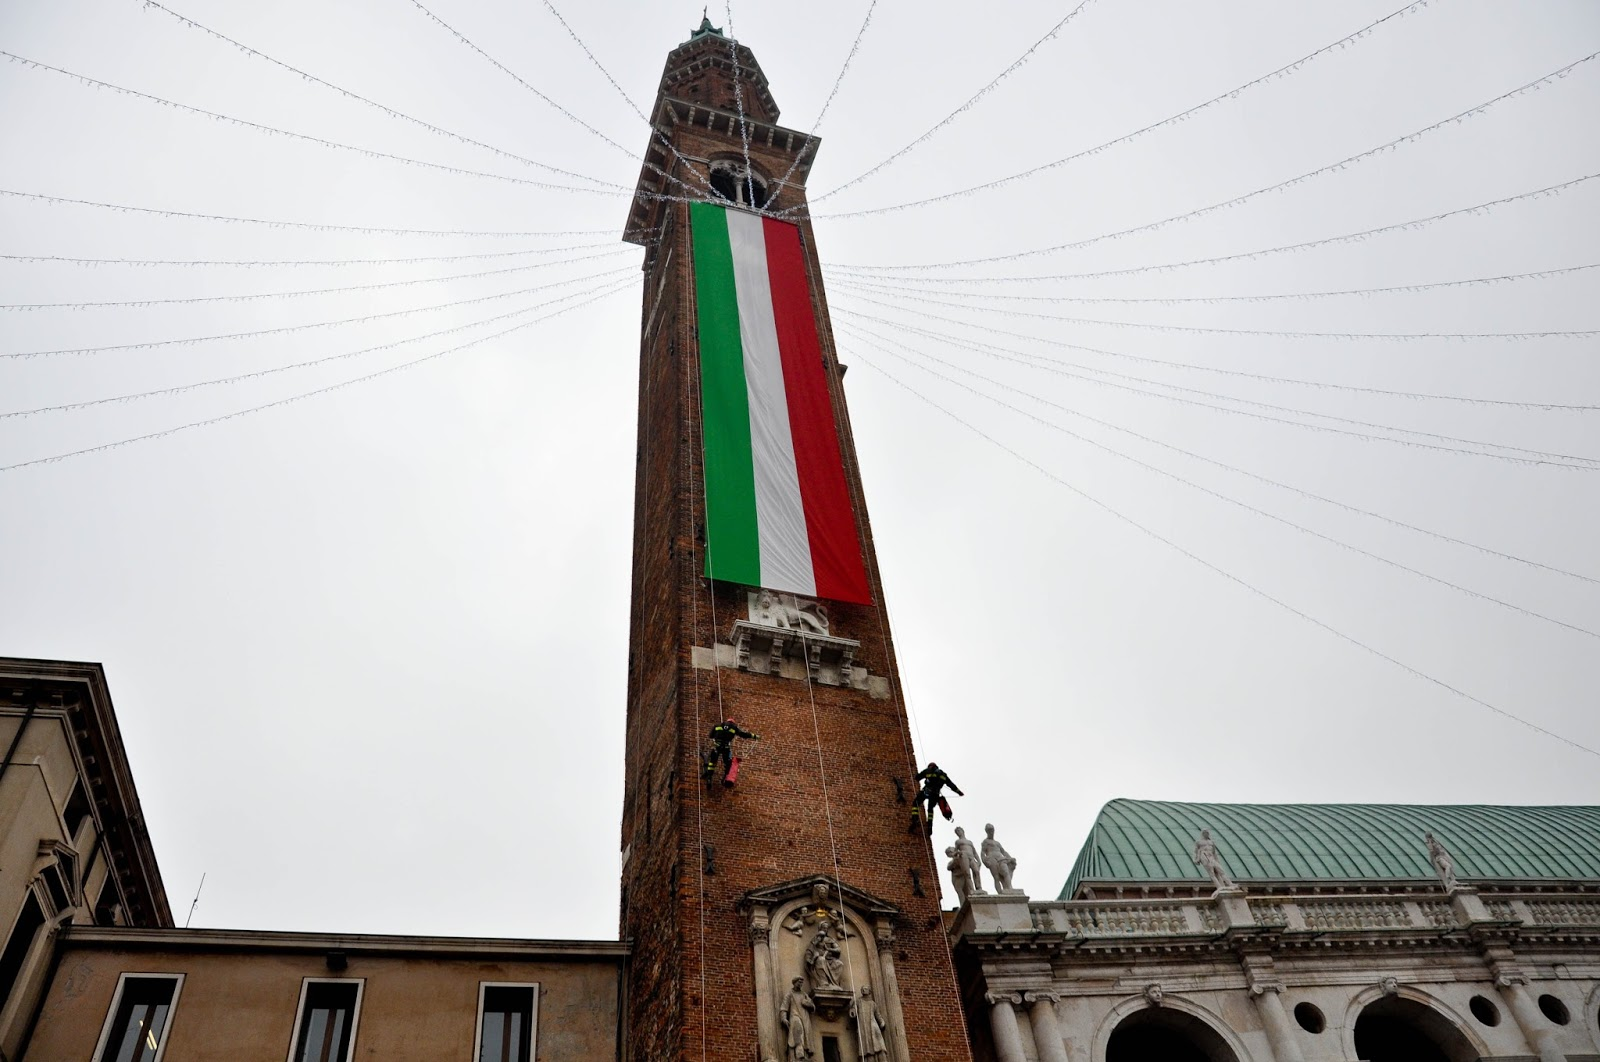 Firefighters climbing down the clock tower of the Palladio's Basilica, Saint Barbara celebration, Vicenza, Veneto, Italy